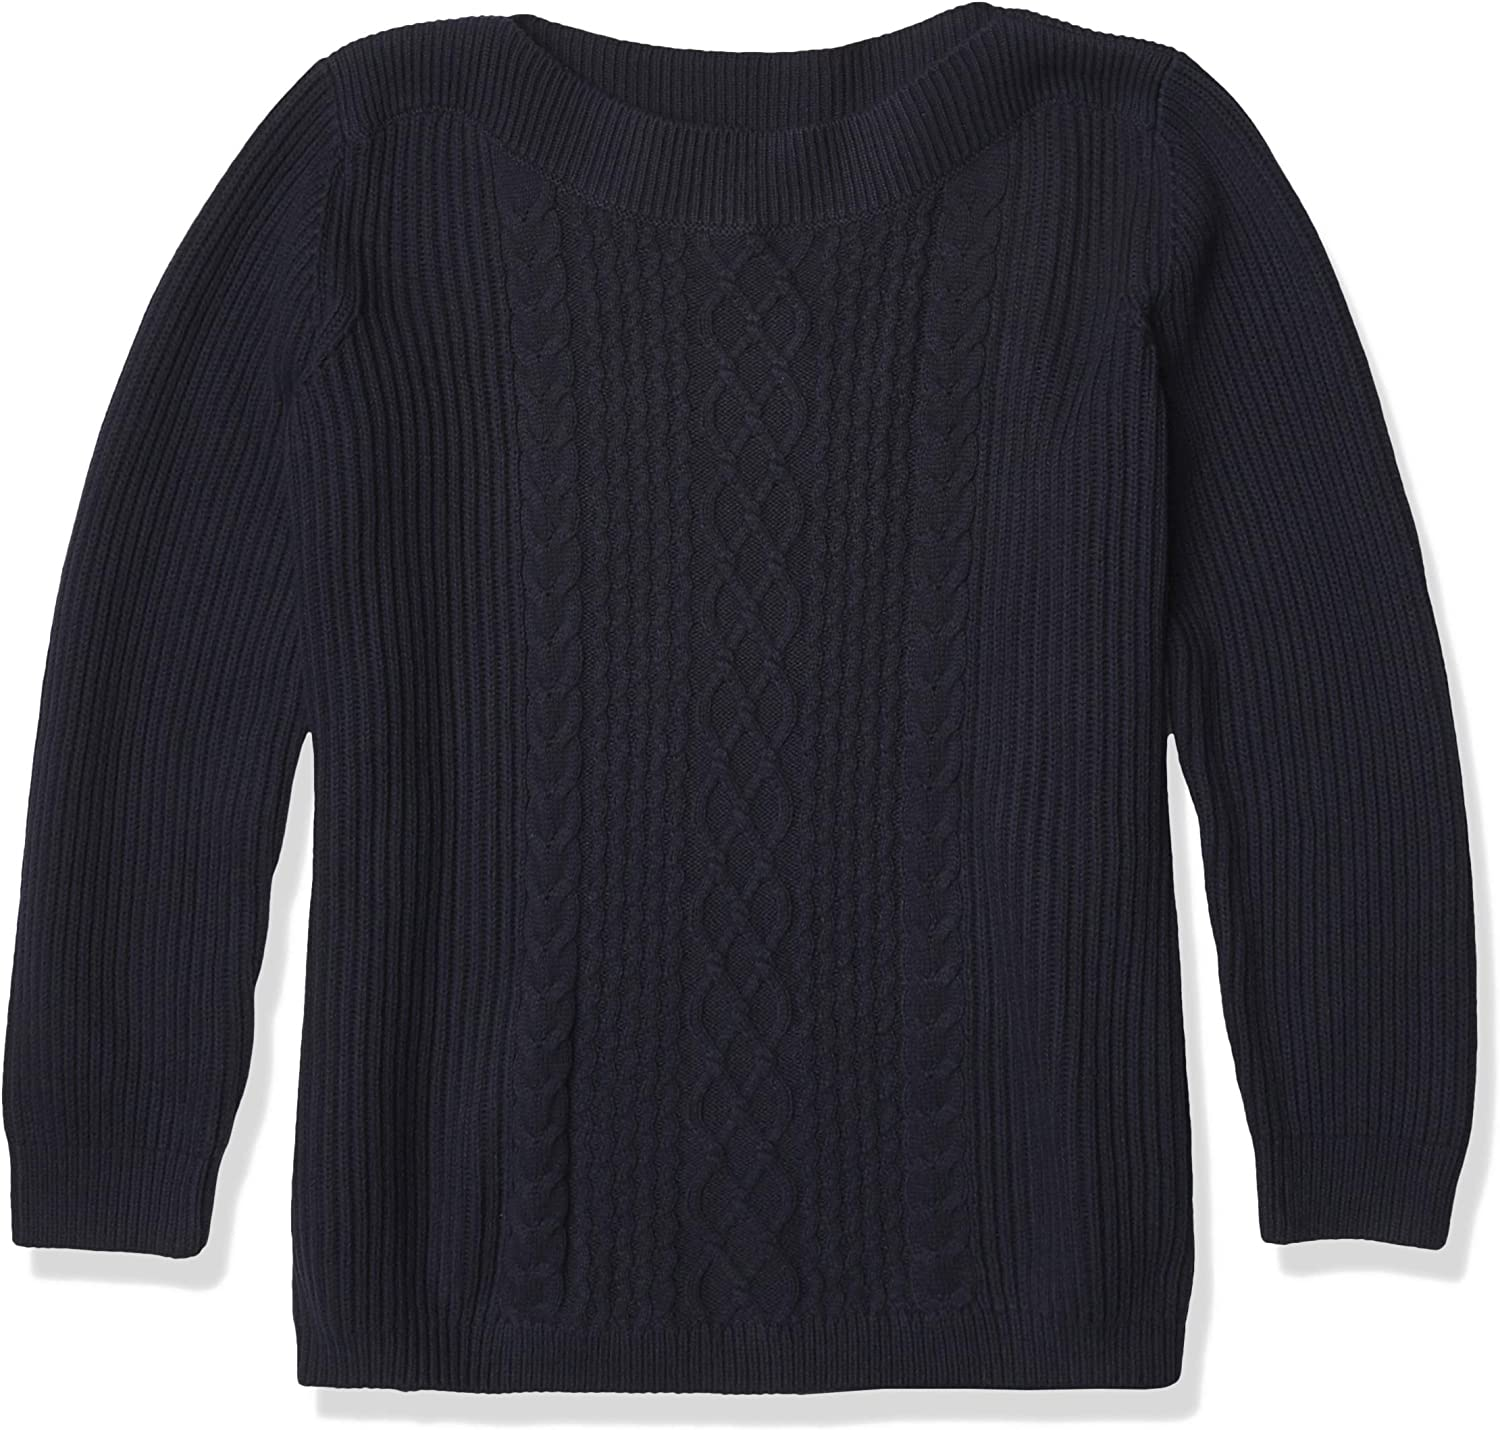 Popular shop is the lowest price challenge Tommy Hilfiger Women's Casual Long Popular popular Sleeve Cable Sweater Knit